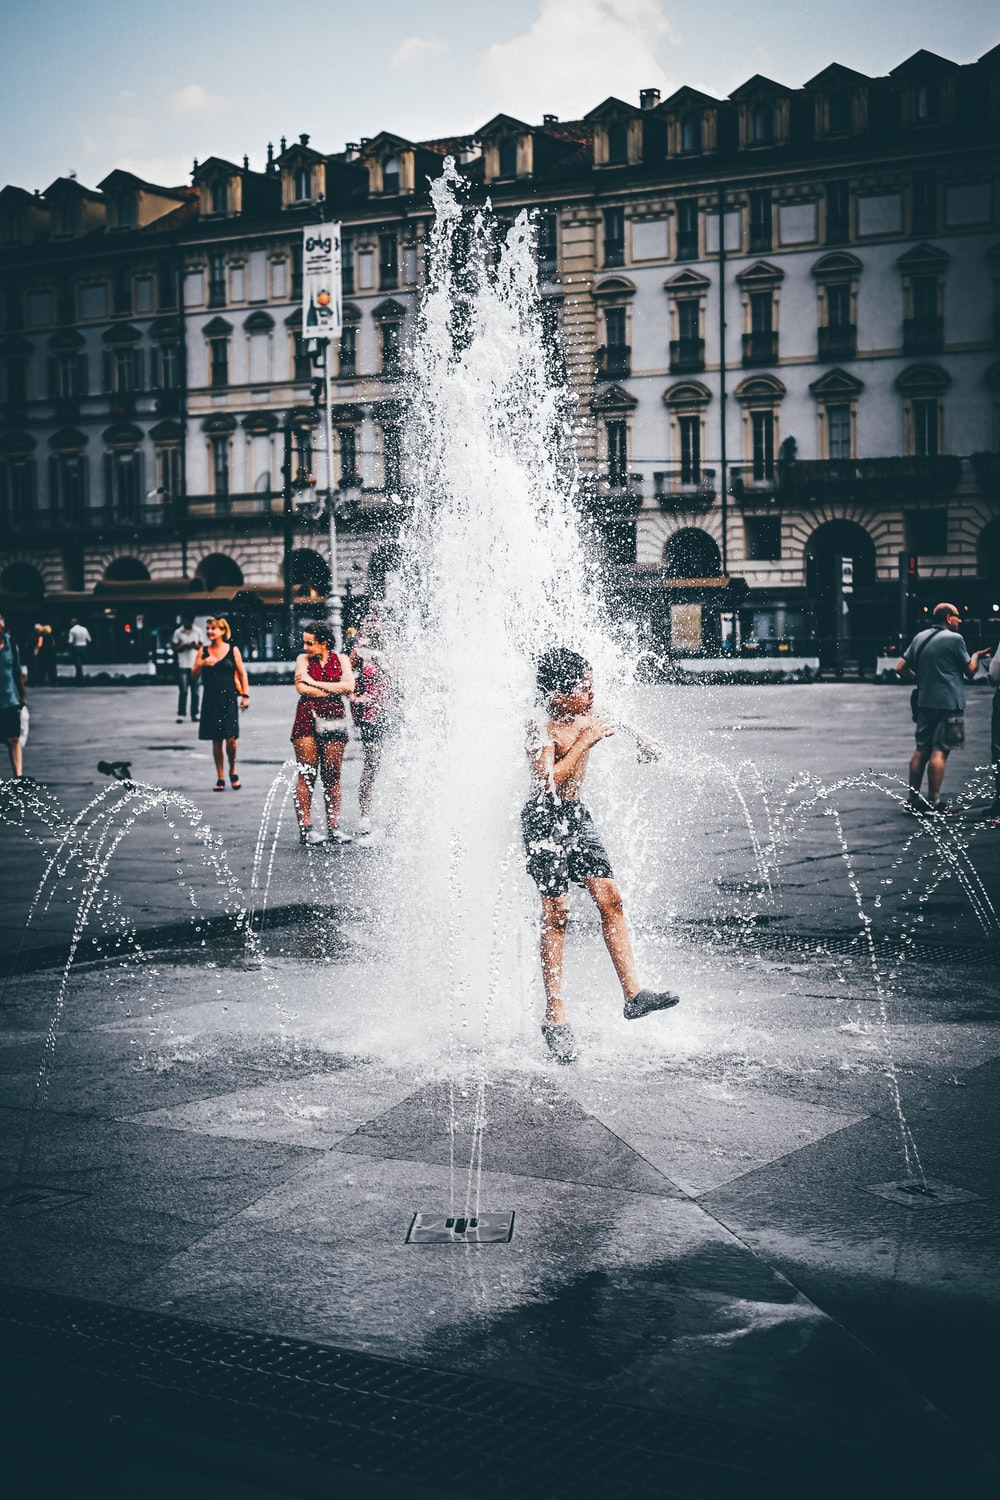 topless boy wearing black shorts playing on outdoor water fountain near people walking beside buildings during daytime